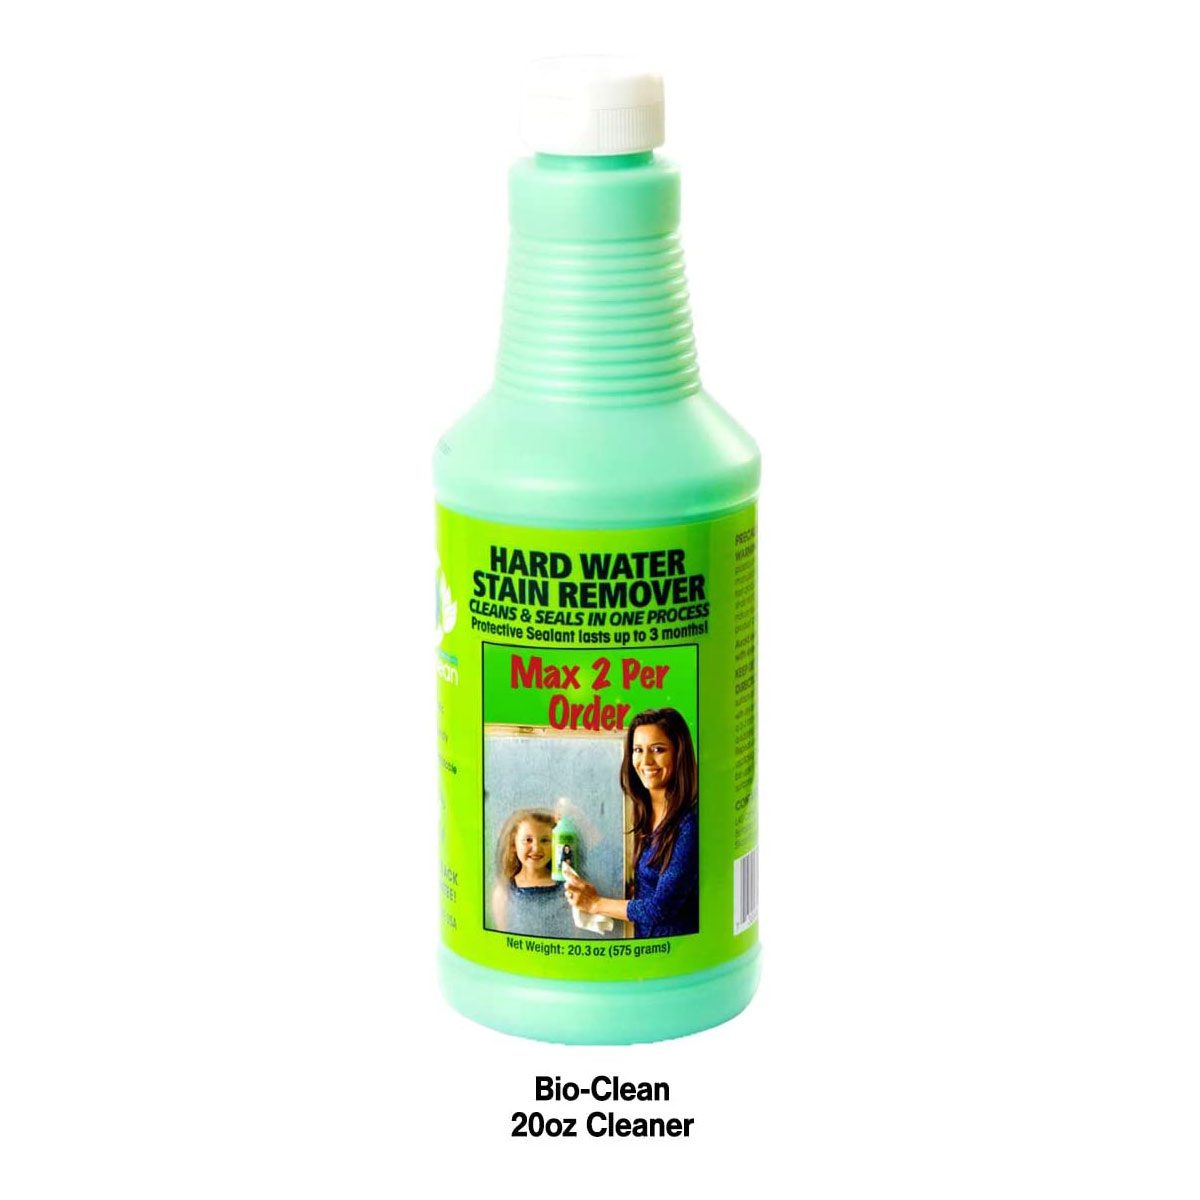 Water stain remover